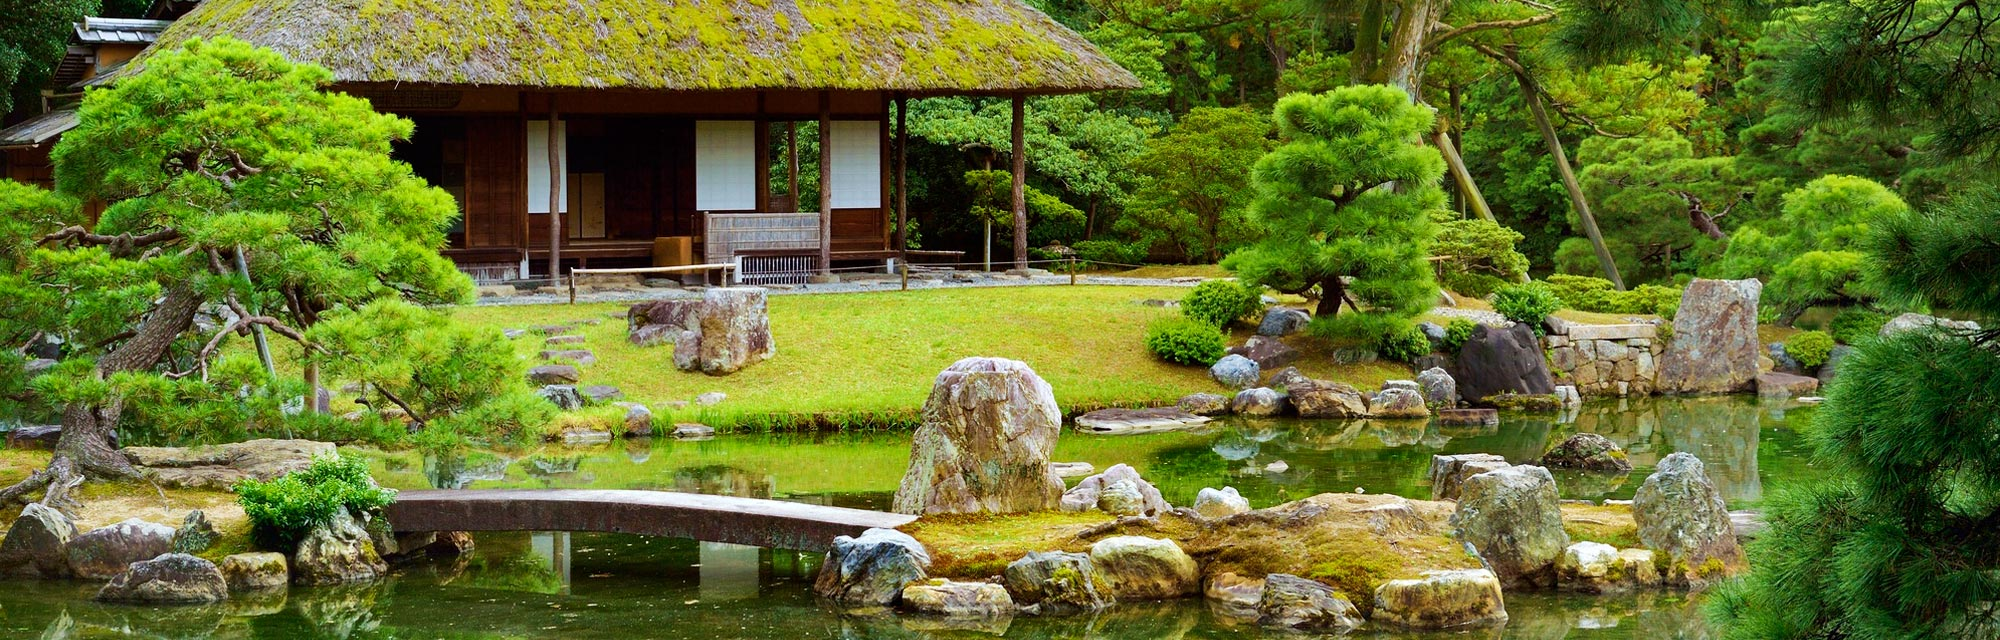 Find peace at a good price in Japan. Image courtesy of Japan National Tourism Organization.